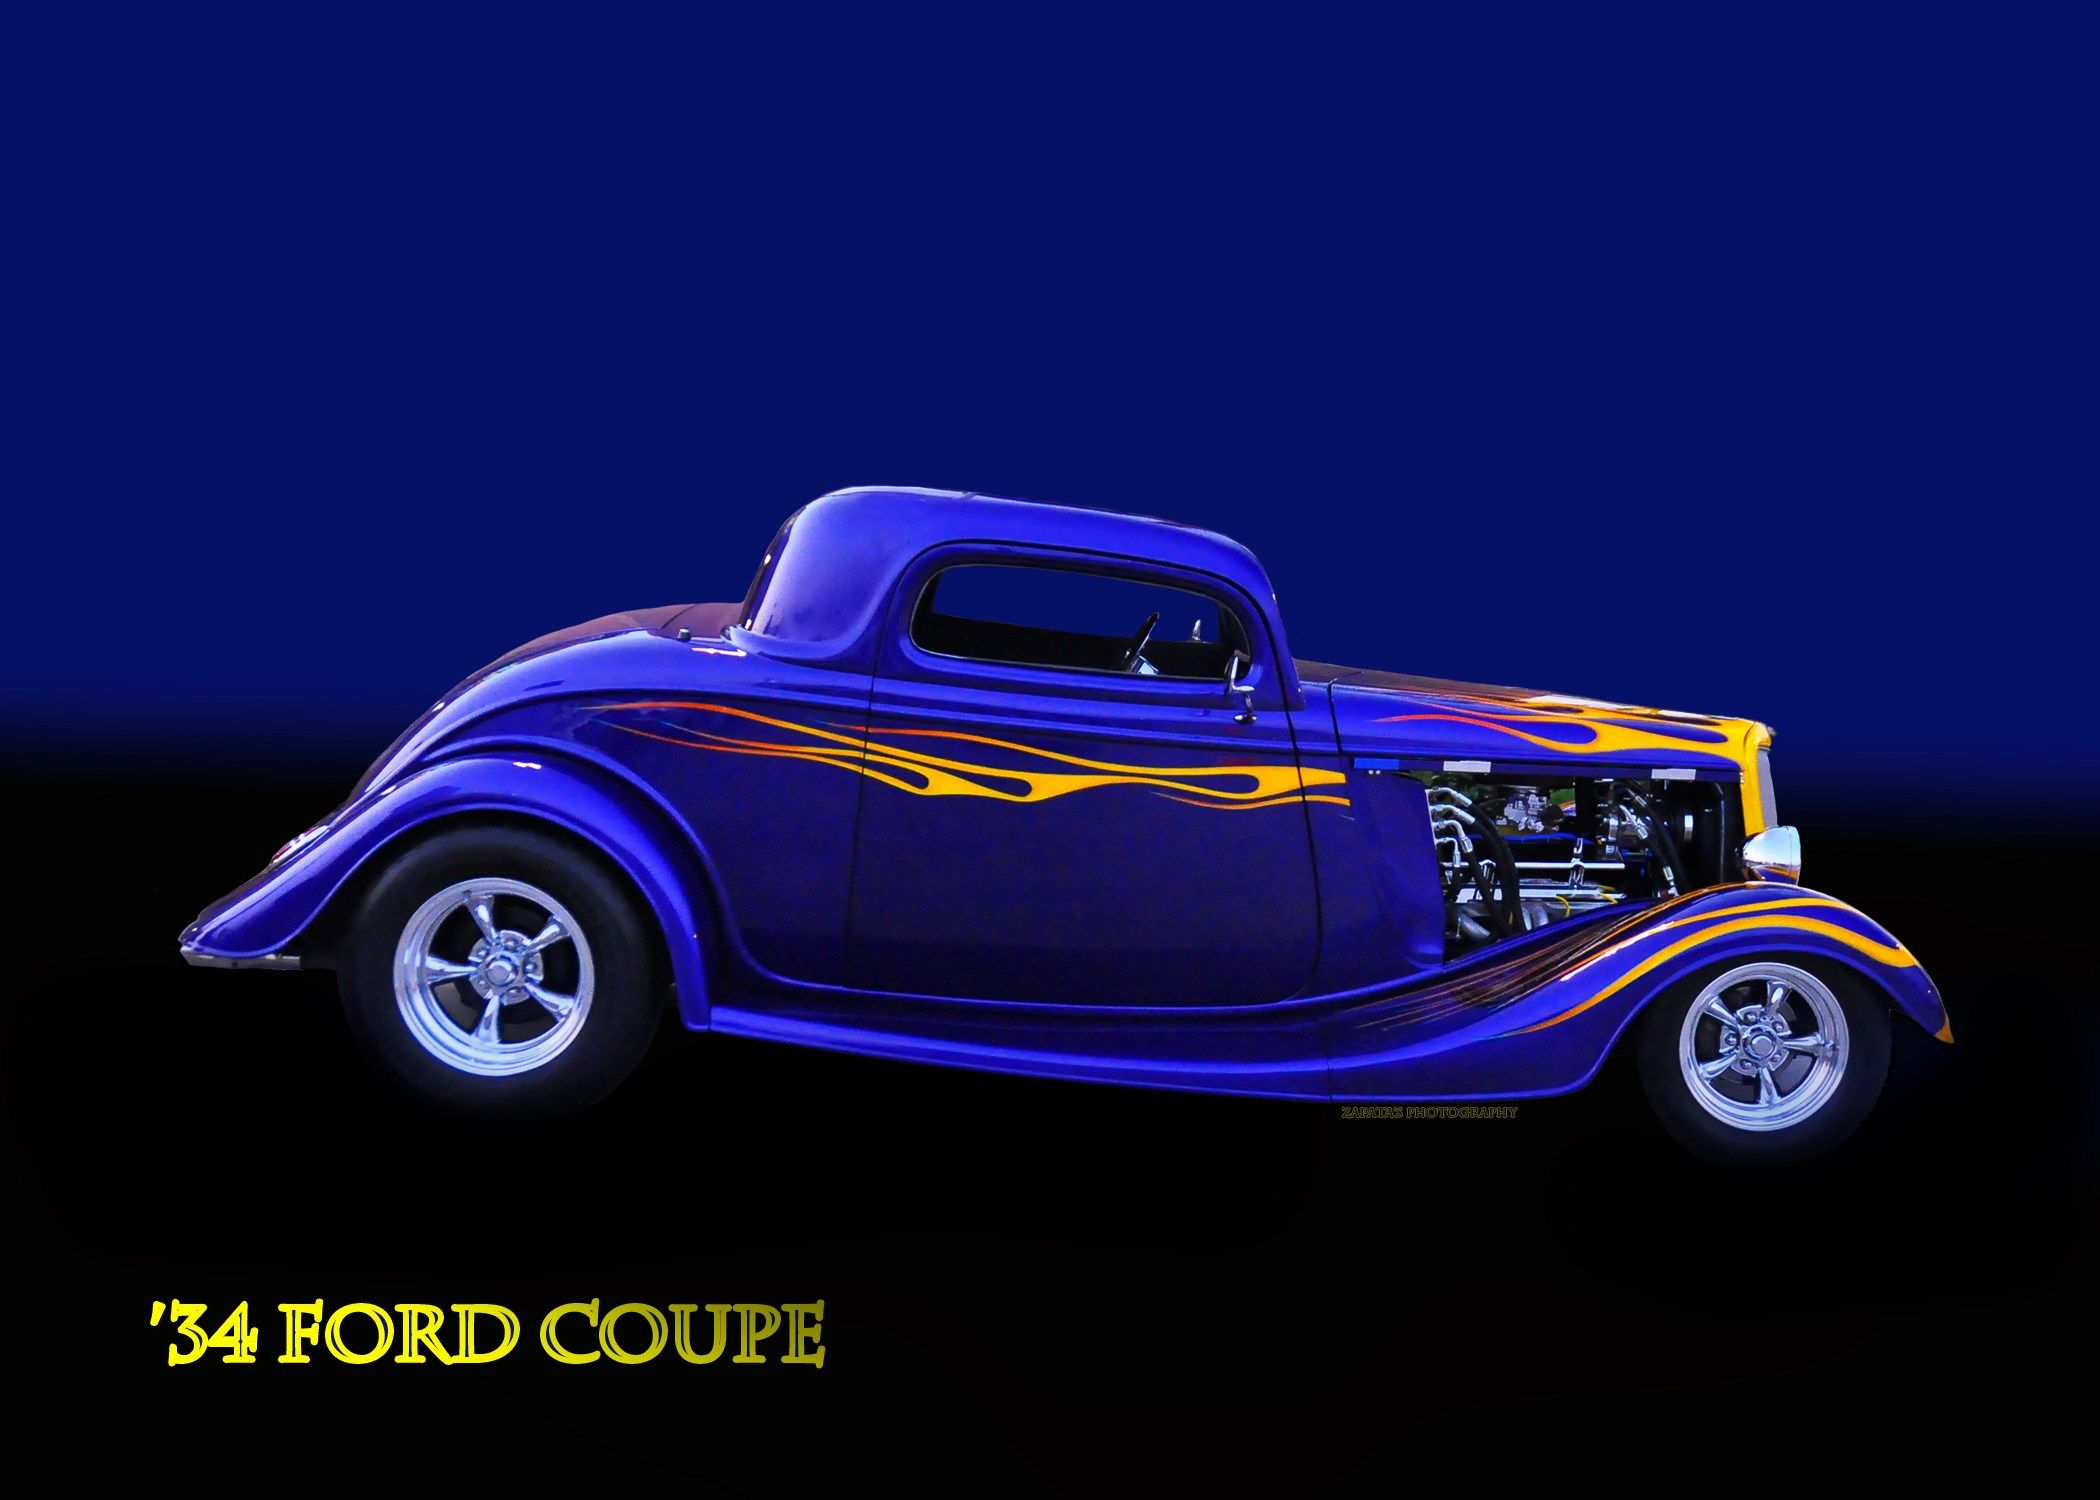 ford images background - ford category | gogolmogol | Pinterest | Ford